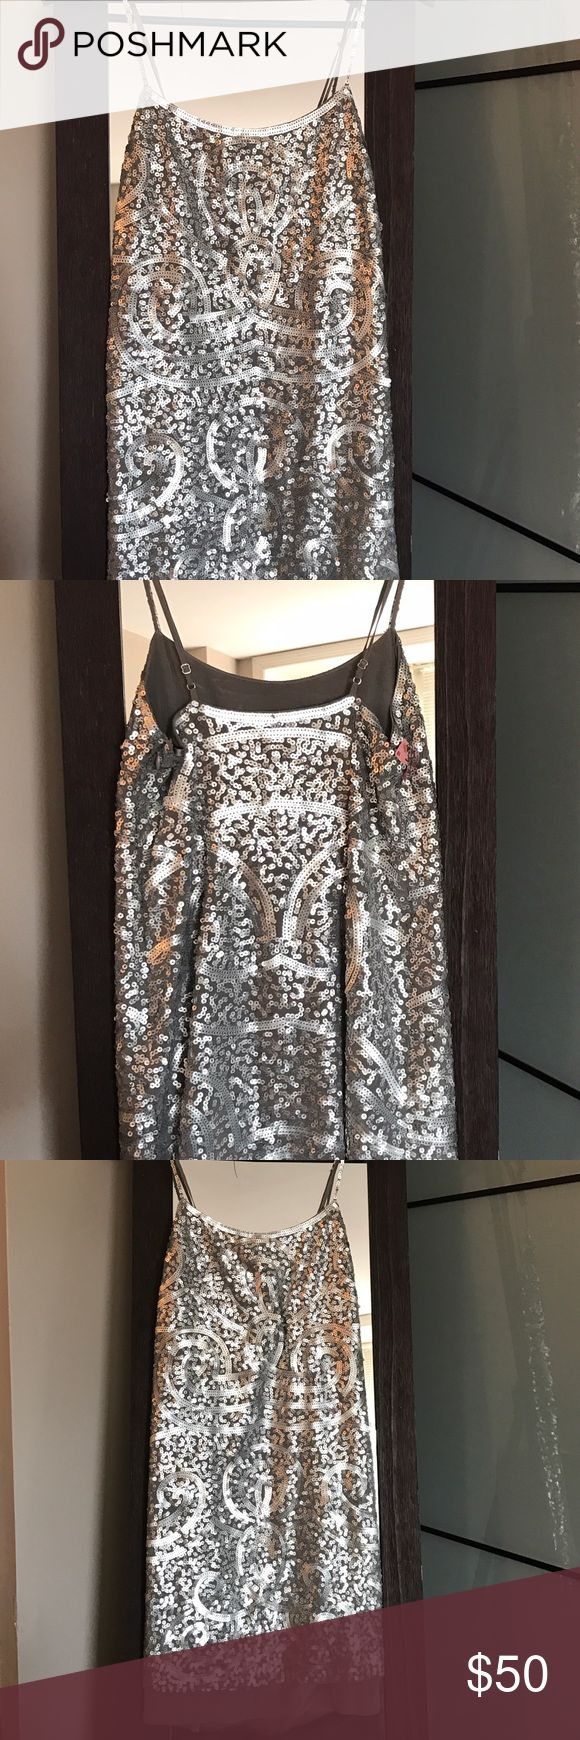 BCBG MAXAZRIA silver cocktail dress Great condition - wore once for NYE and then dry cleaned. Zipper at side. Adjustable spaghetti straps. BCBGMaxAzria Dresses Mini